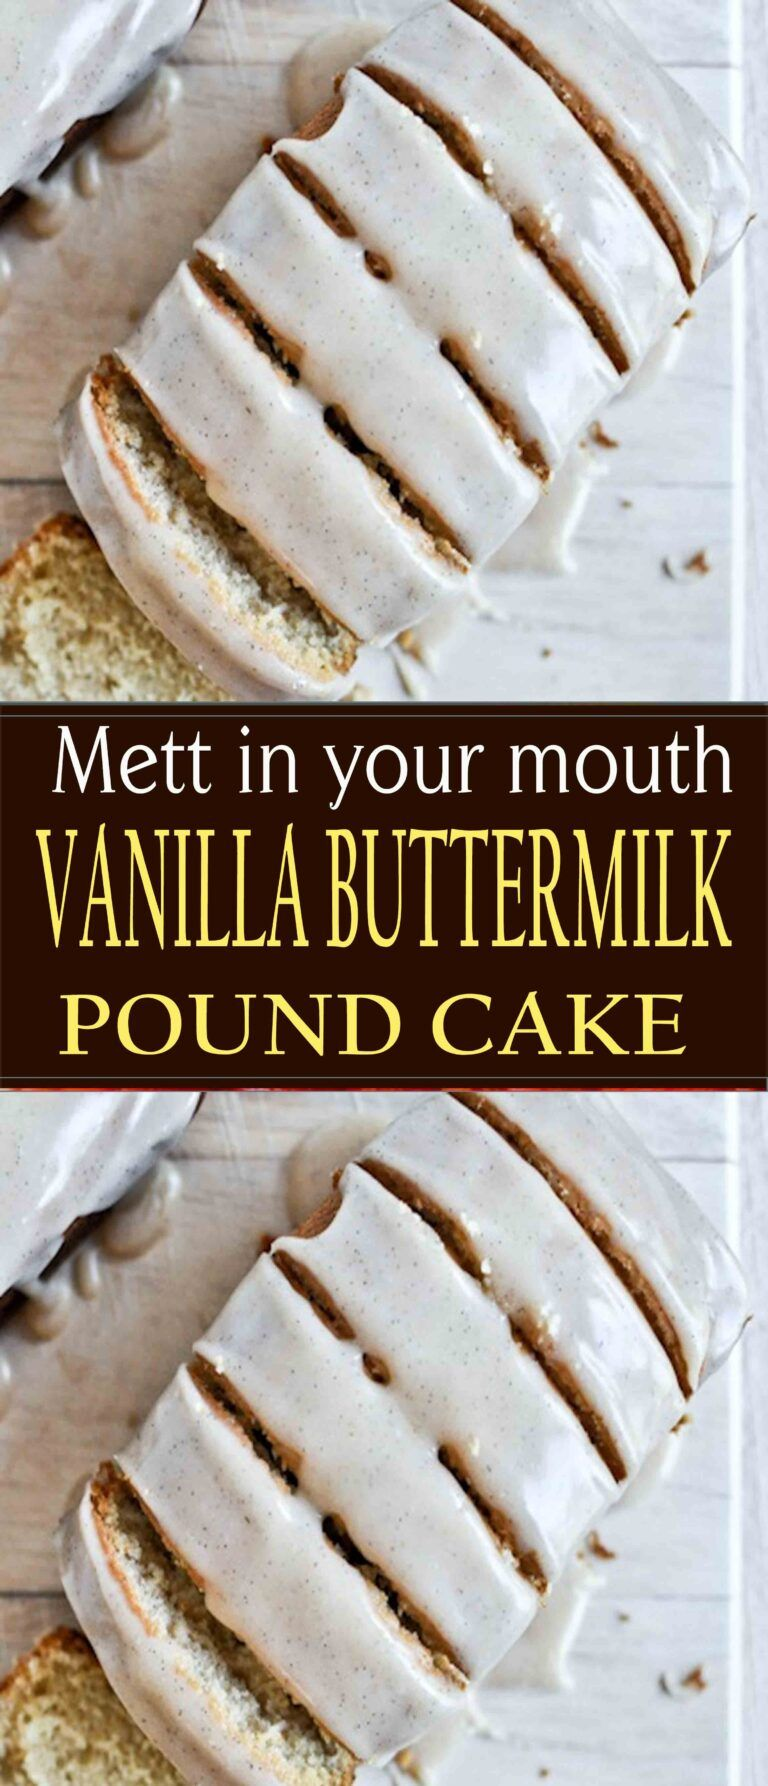 Vanilla Buttermilk Pound Cake Magicrecipess In 2020 Buttermilk Pound Cake Pound Cake Buttermilk